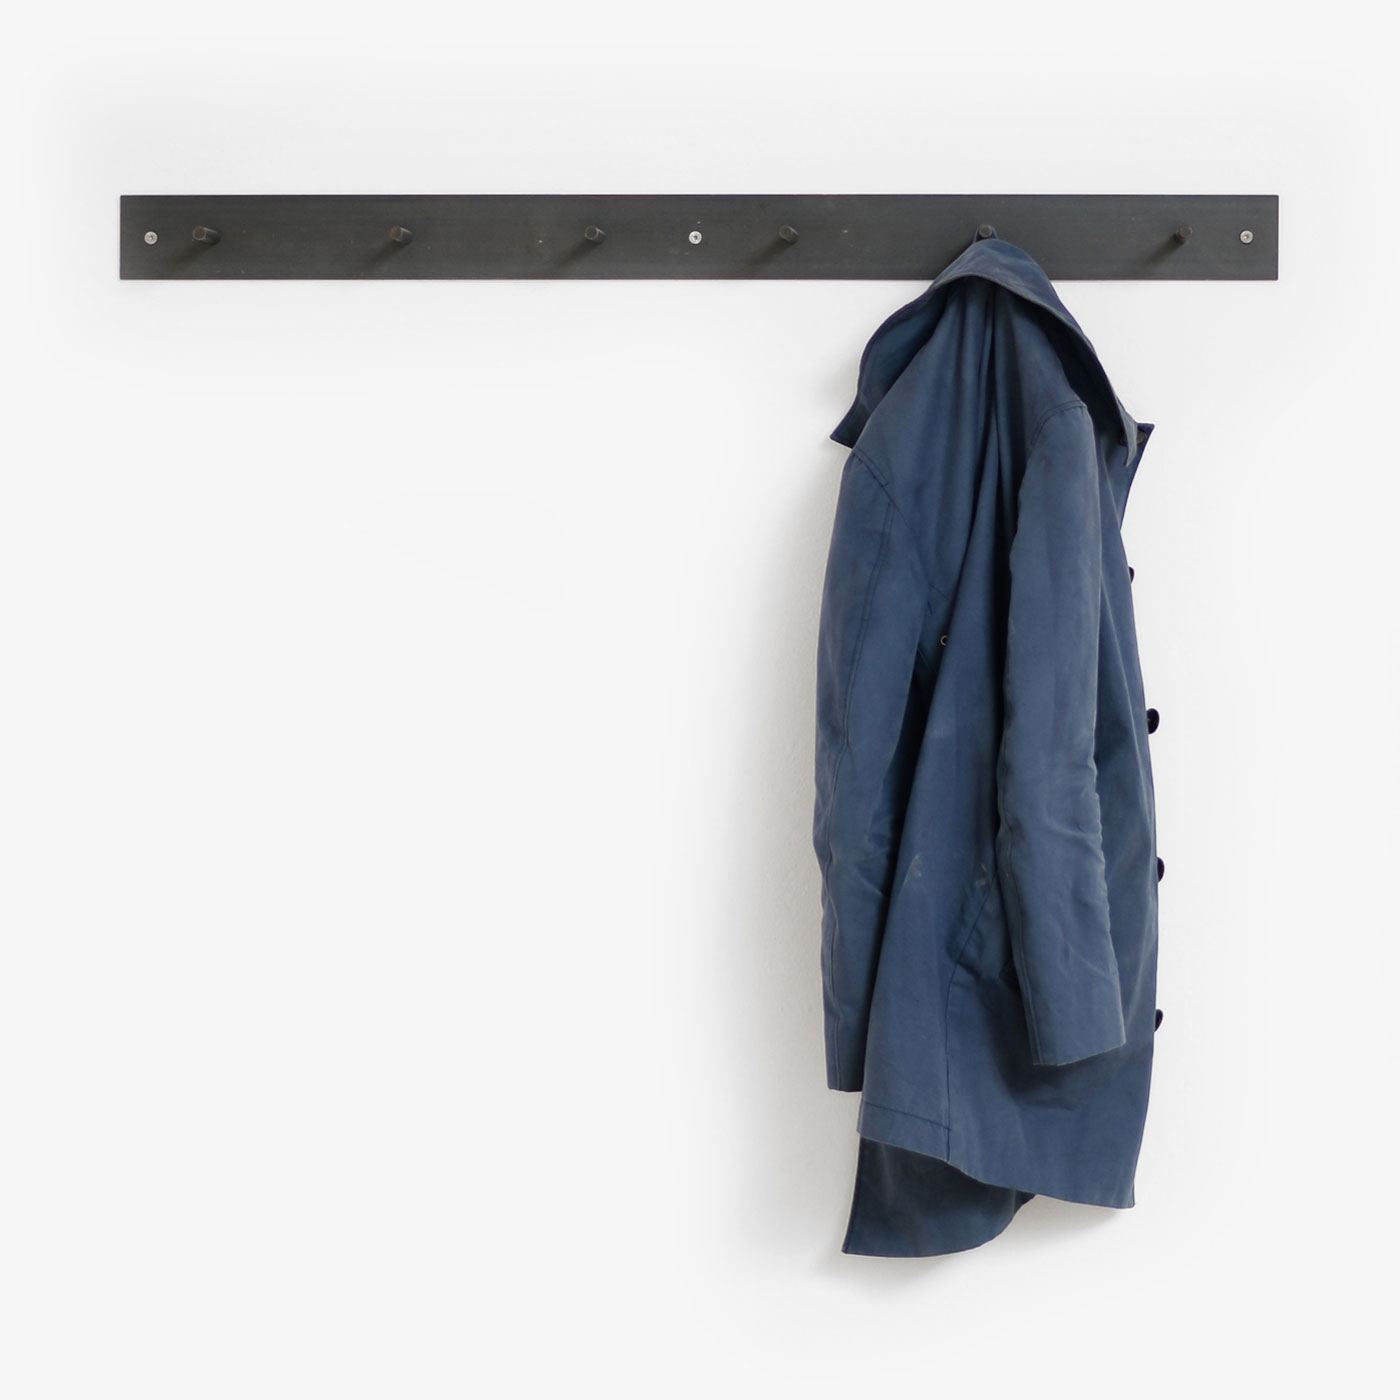 Hellogoodbye coat rack